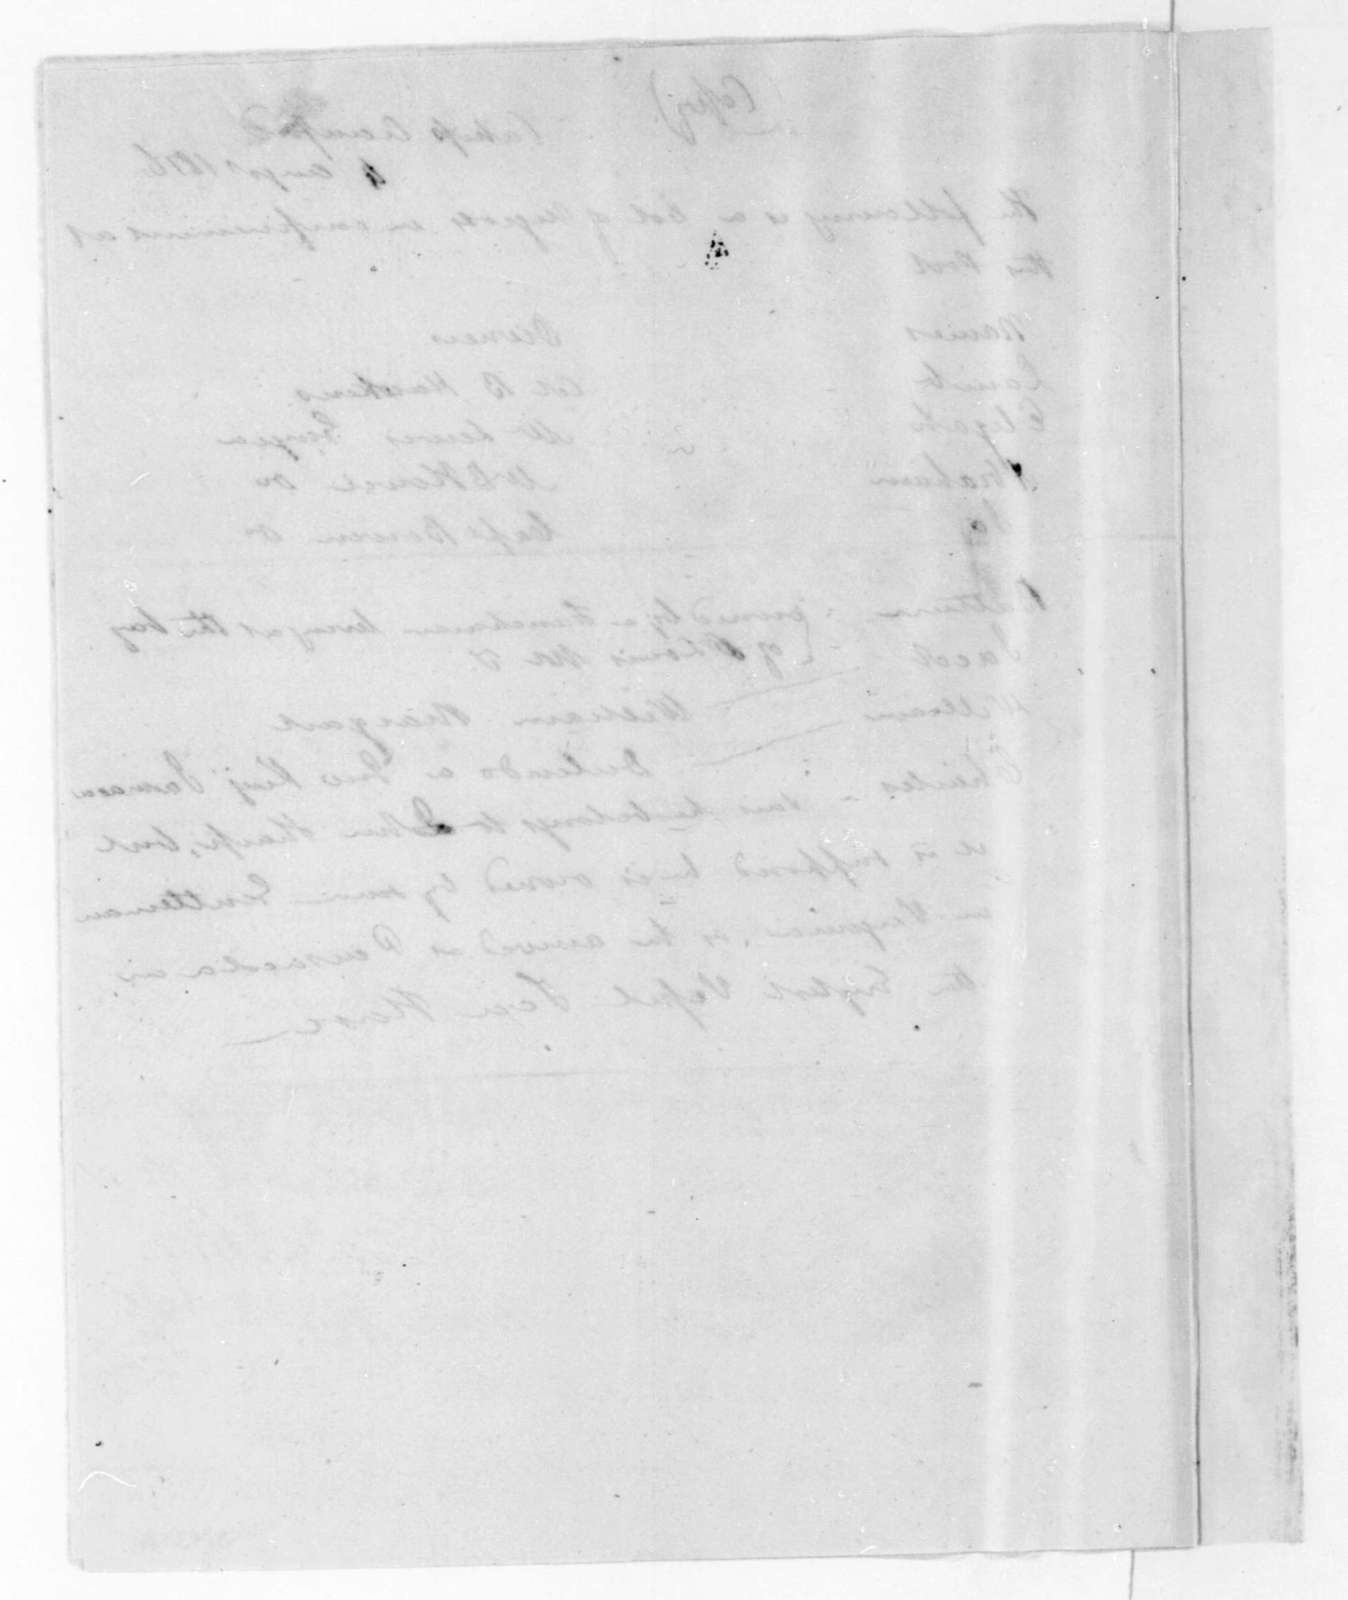 D. L. Clinch to R. Butler, August 2, 1816. Includes an inventory of captured stores from a fort in East Florida.